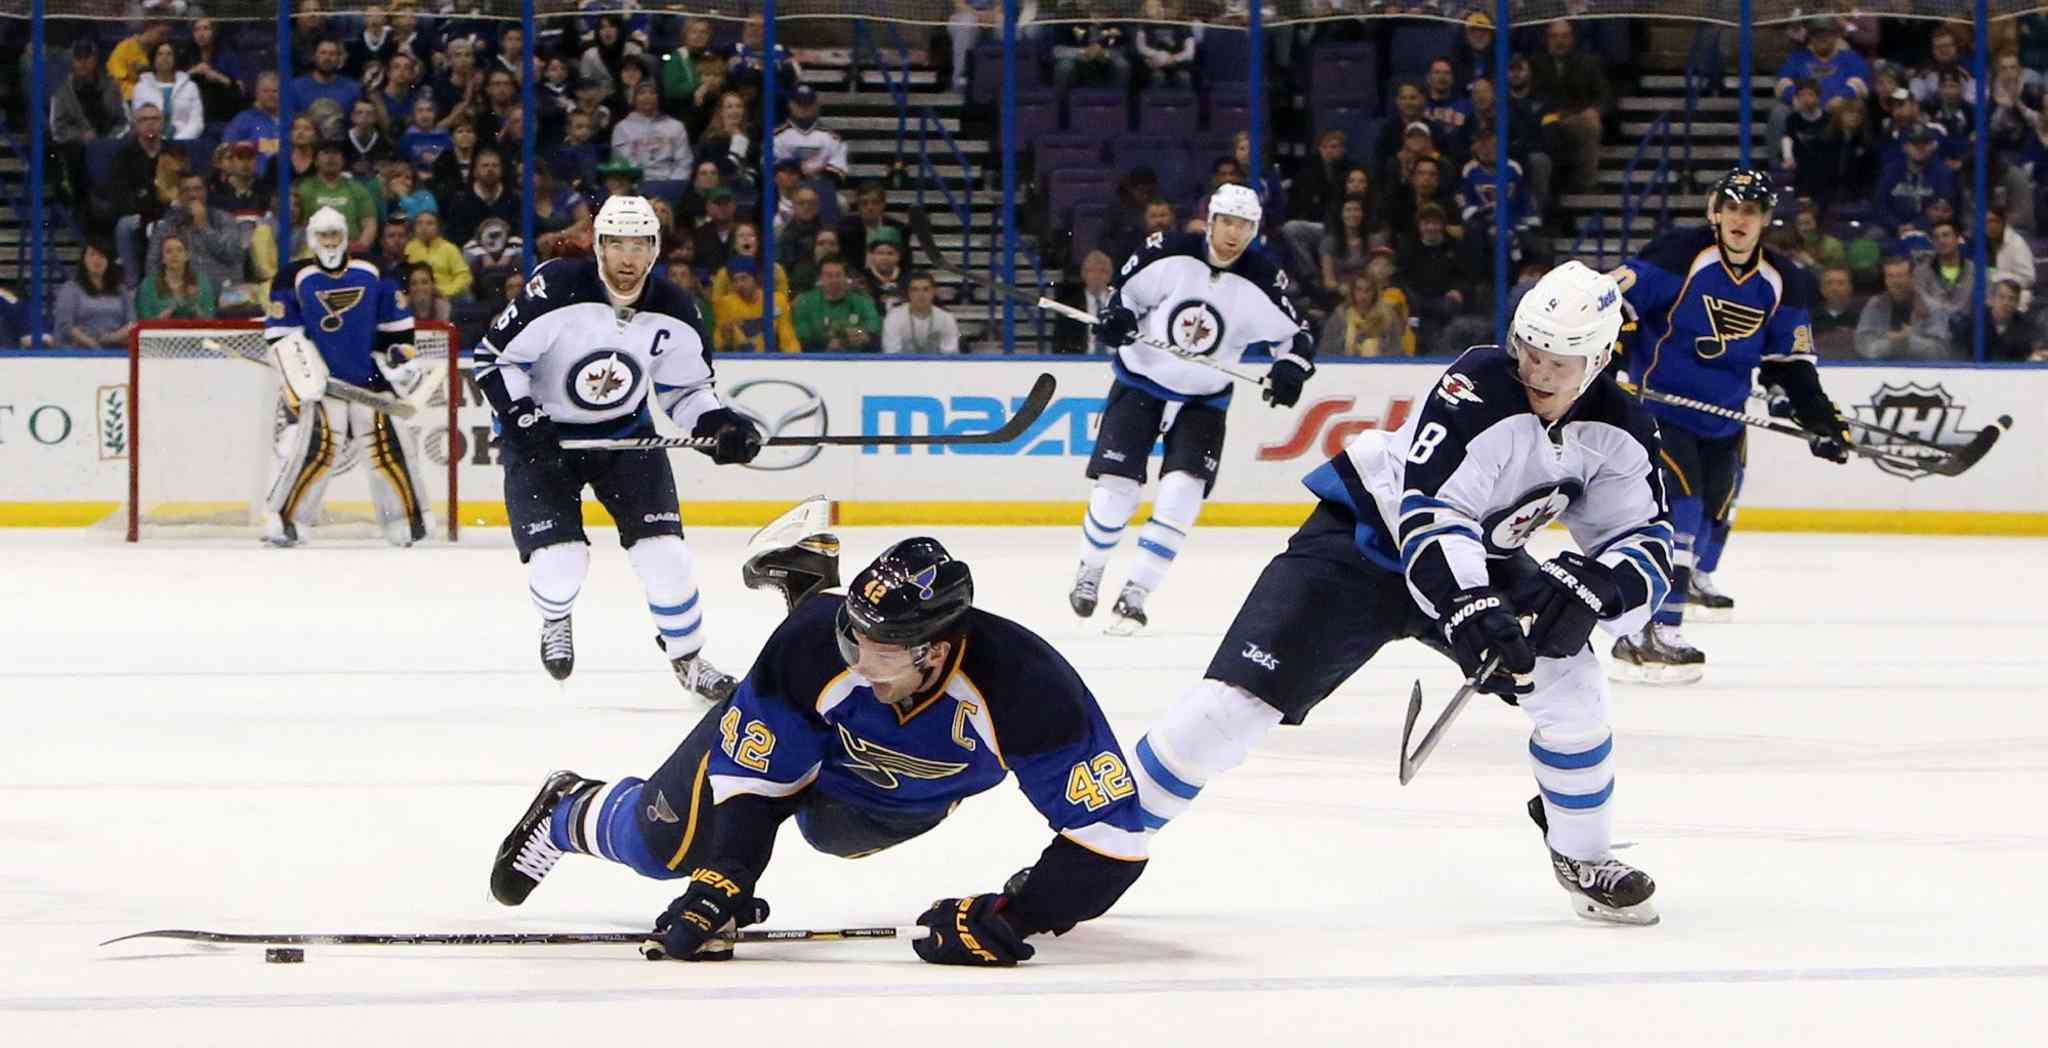 Blues centre David Backes is awarded an empty-net goal after being taken down by Jets defenceman Jacob Trouba in the third period.